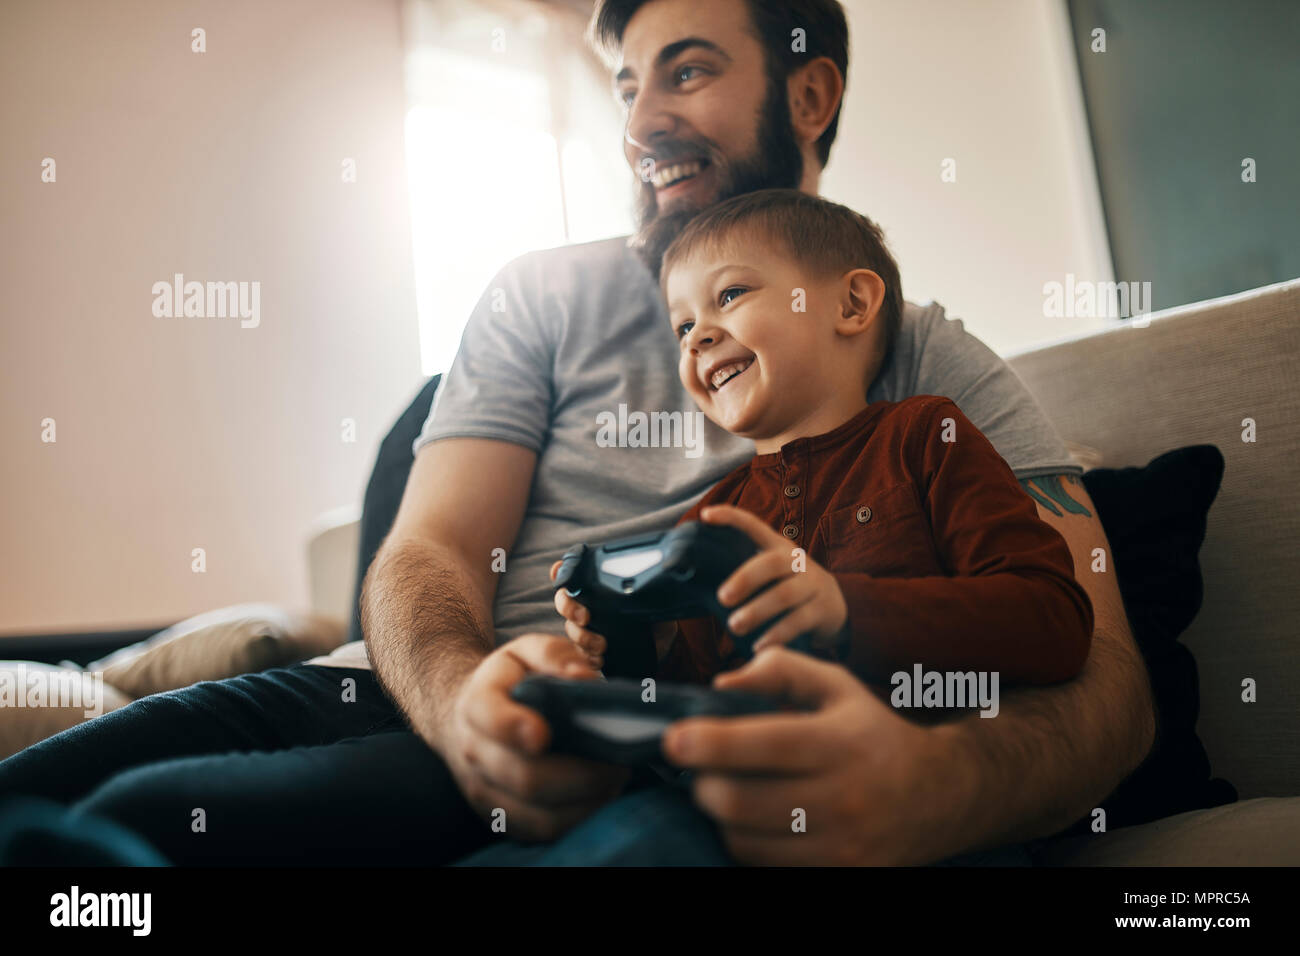 Happy father and little son sitting together on the couch playing computer game - Stock Image